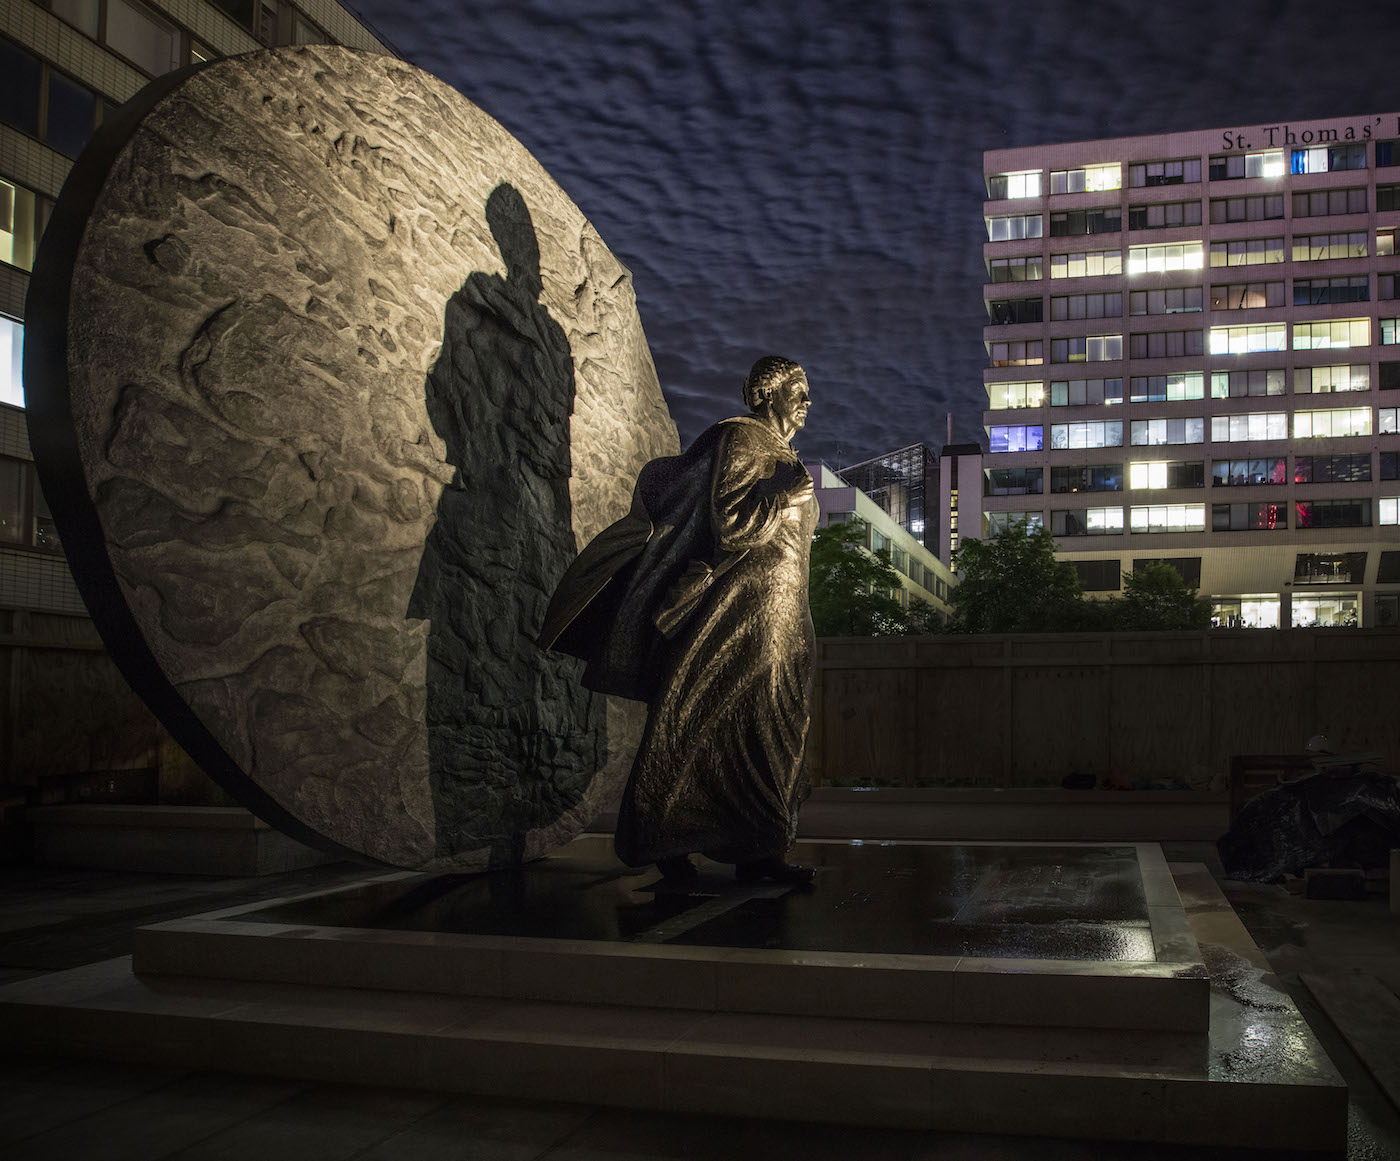 The Mary Seacole statue at night (courtesy the Mary Seacole Memorial Statue Appeal)